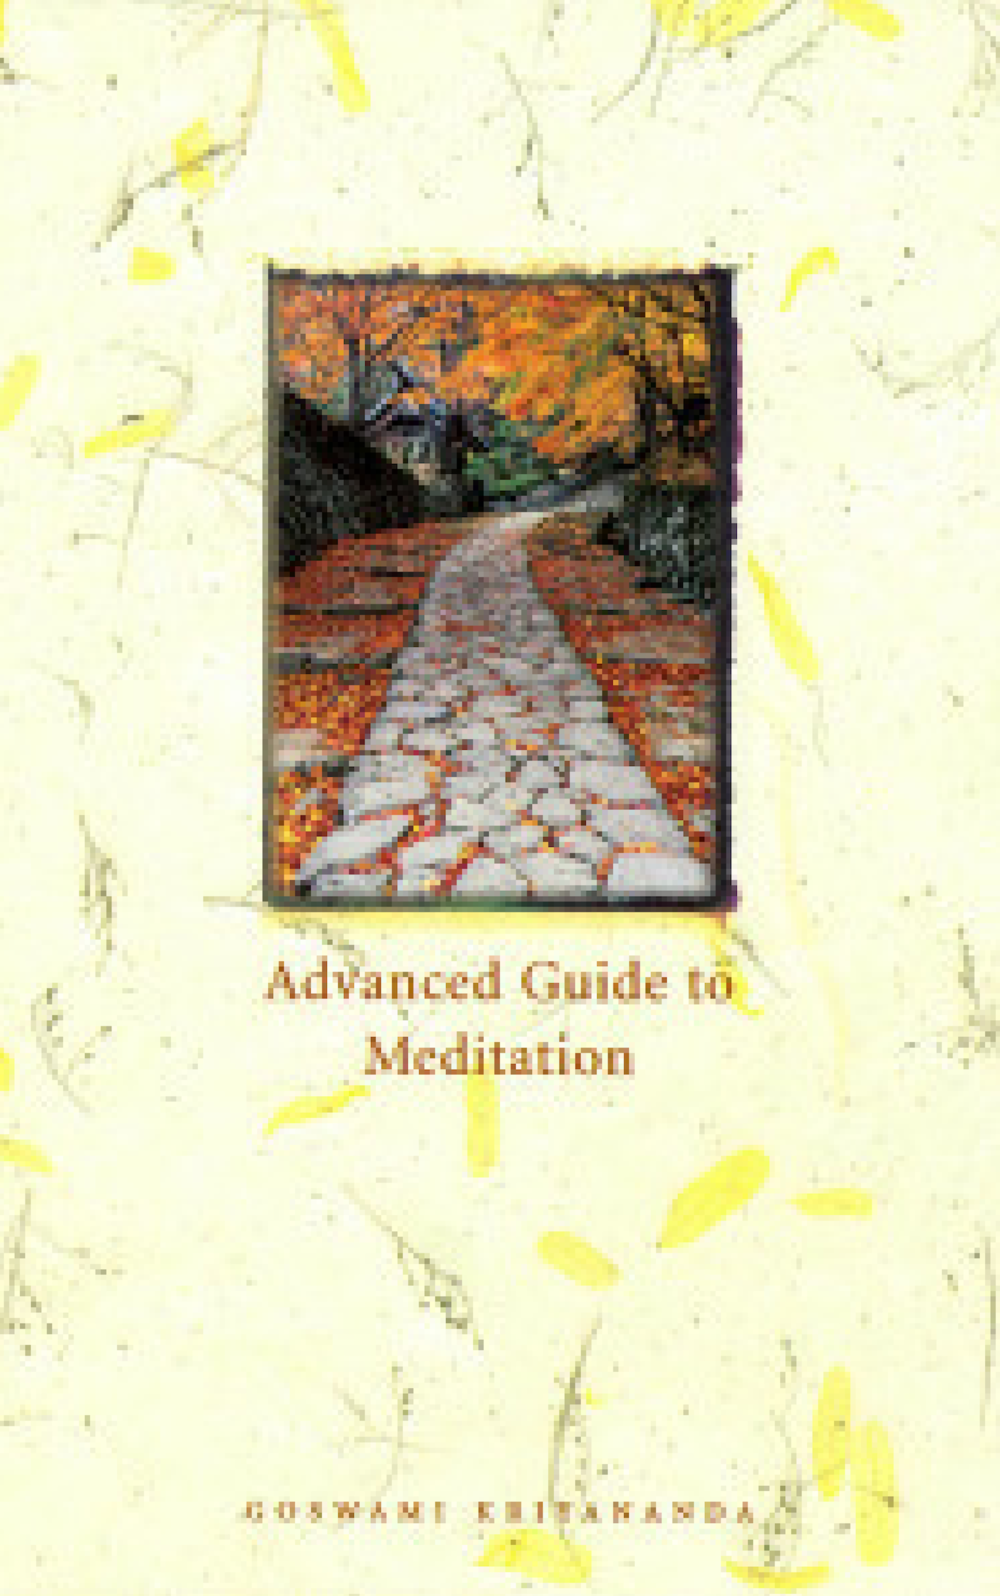 Advanced Guide to Meditation Hardcover - $13.75